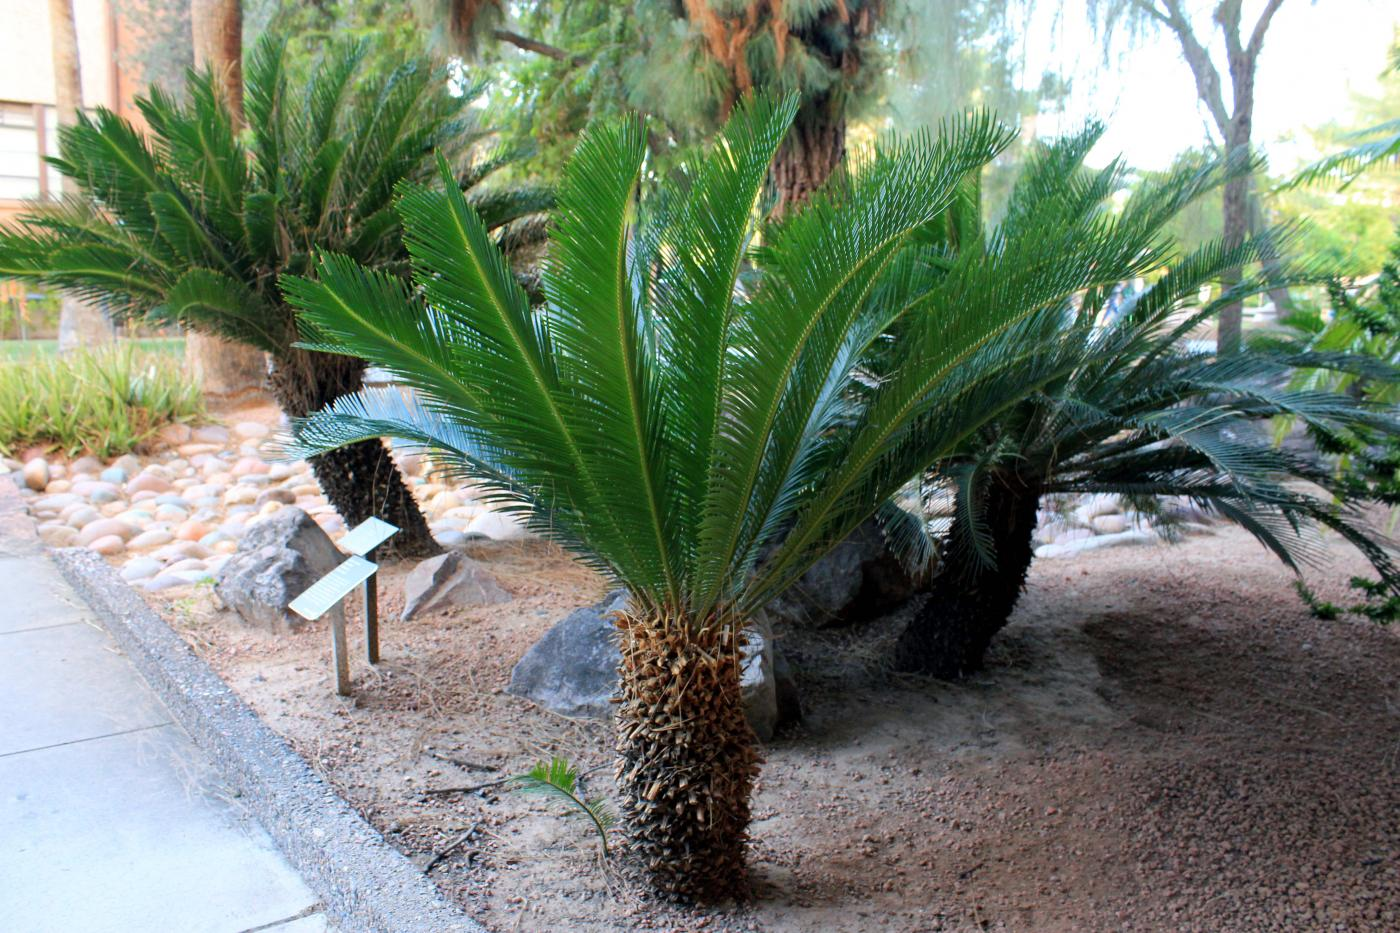 Cycas| Morhology| Anatomy| Life Cycle| Living Fossil